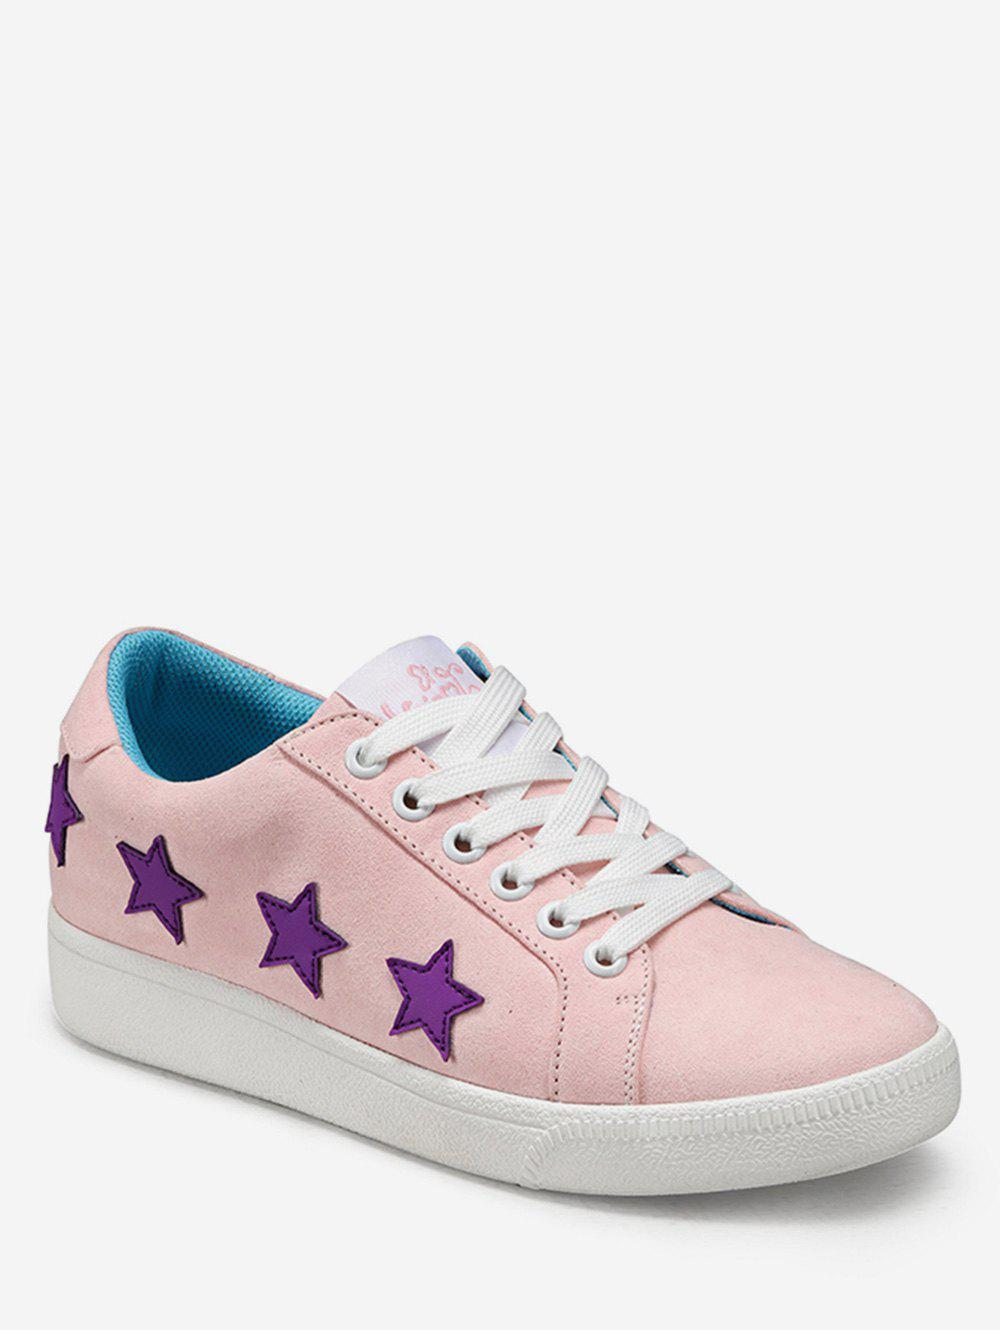 Fashion Star Applique Lacing Low Top Sneakers